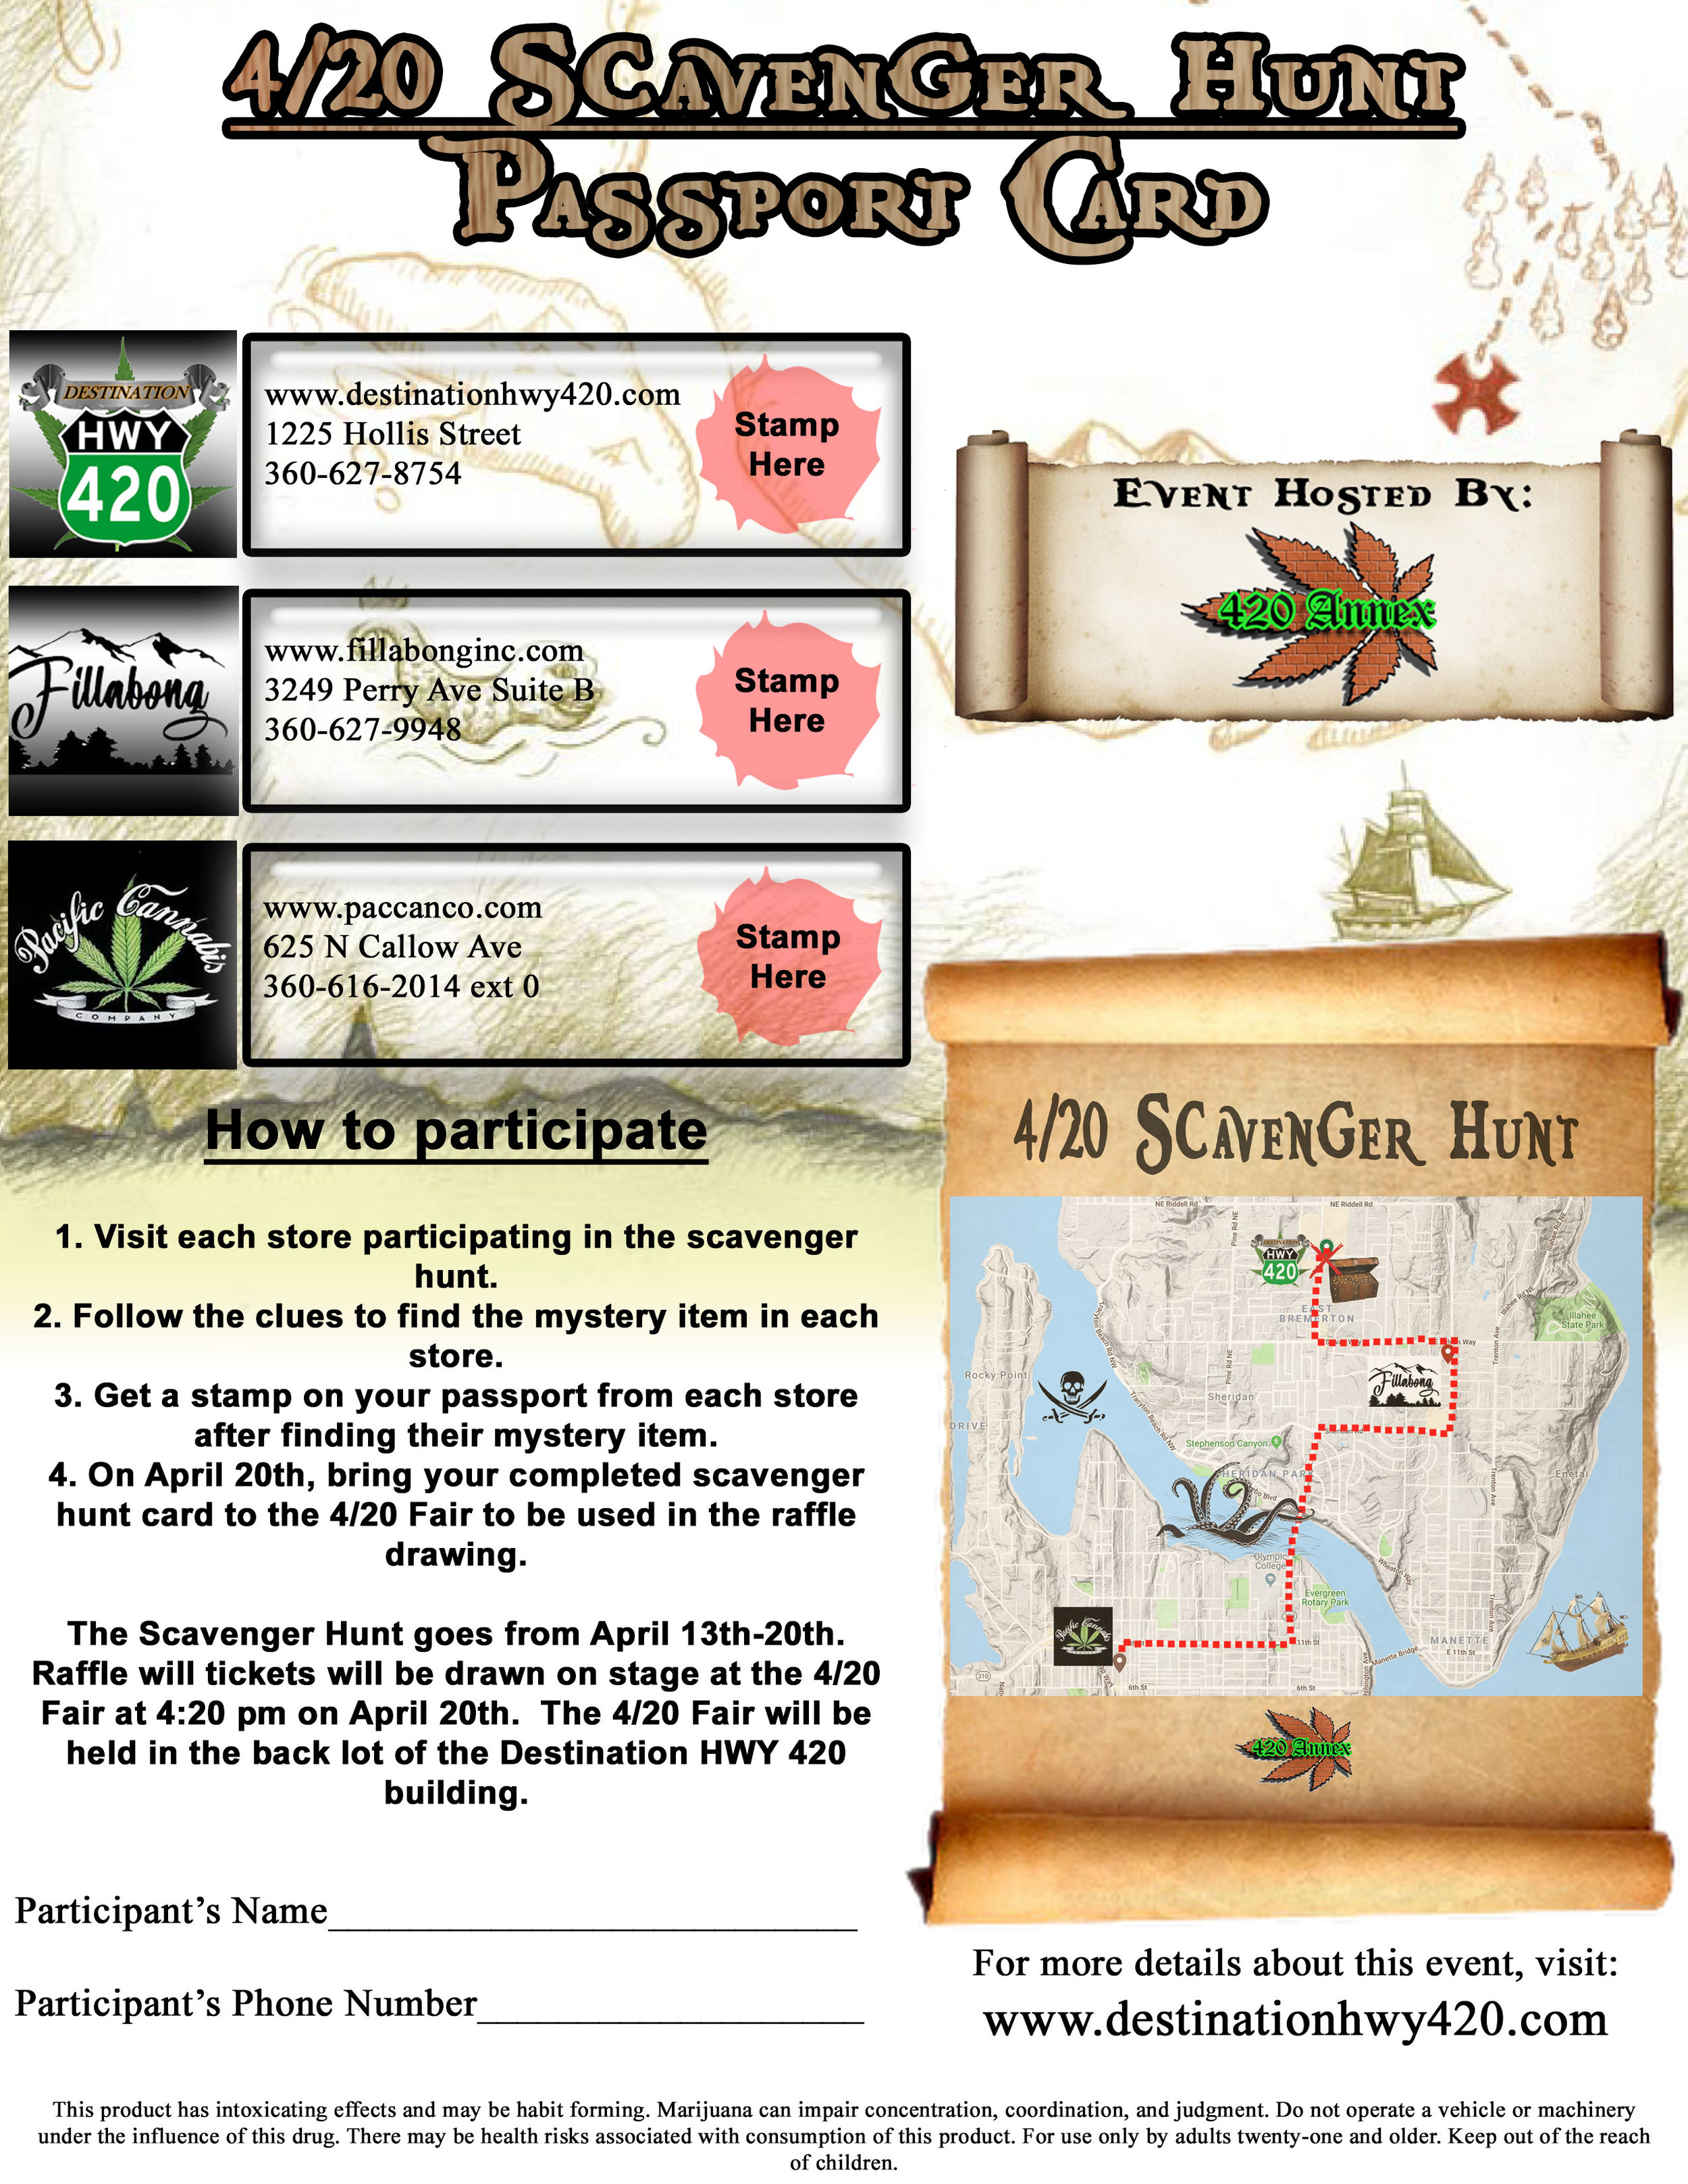 This is the 2019 4/20 Scavenger Hunt Passport Card. Visit Destination HWY 420, Pacific Cannabis Company, and Fillabong Bremerton, solve each stores' riddle, and find their mystery item, for a chance to win some amazing gift baskets from the 420 Annex!